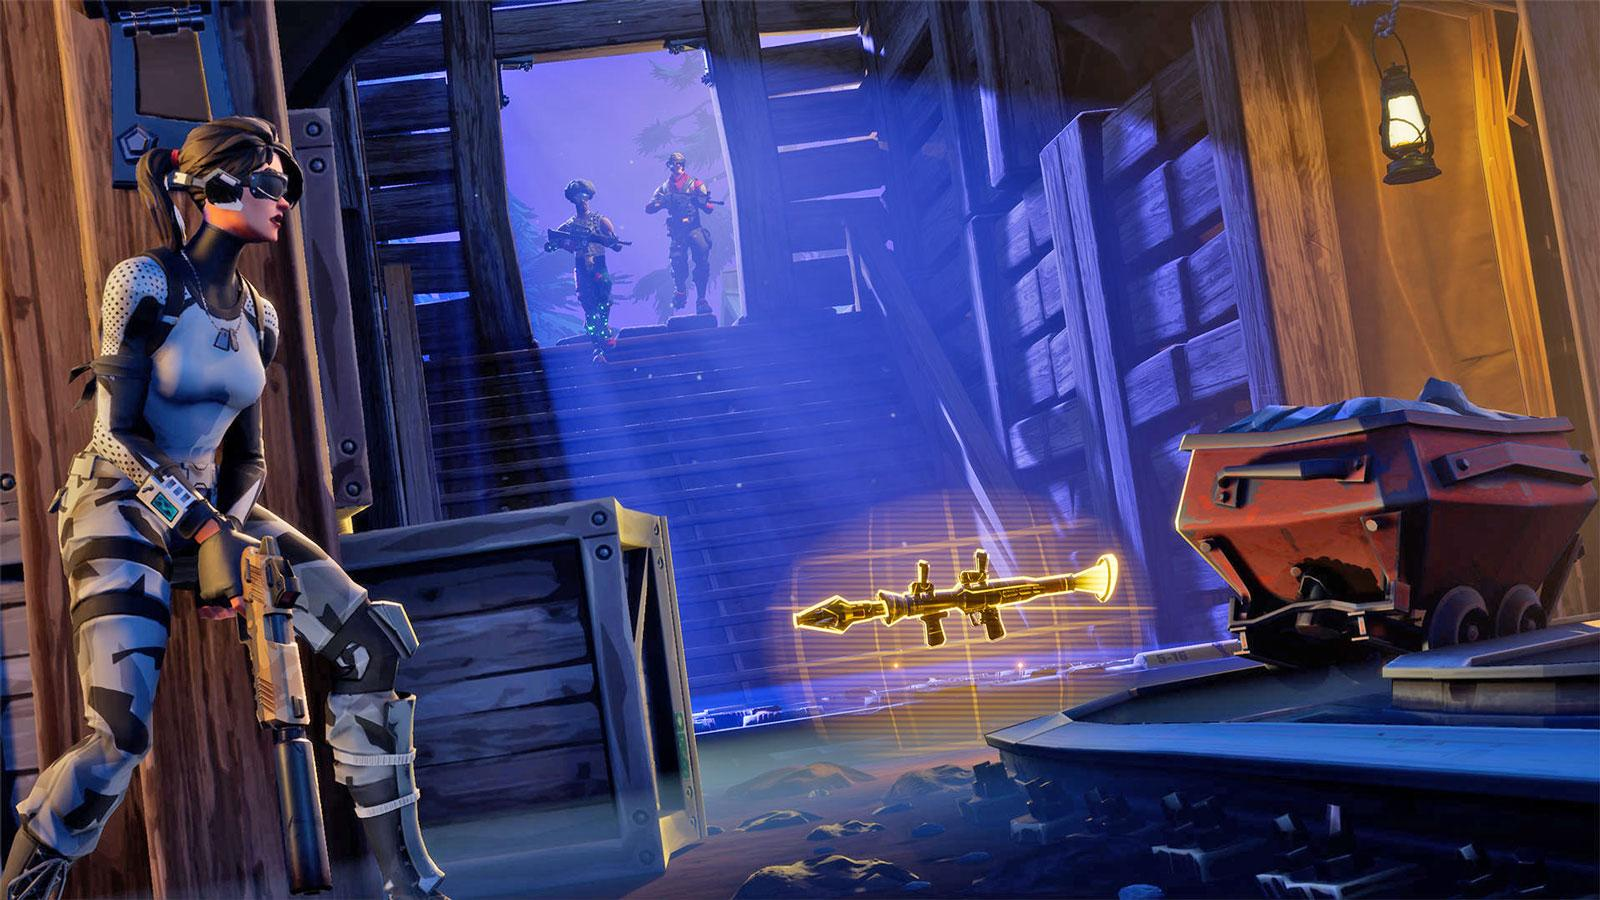 Fortnite Build Offs Fortnite Could Partially Lose The One Thing That Makes It Unique Engadget